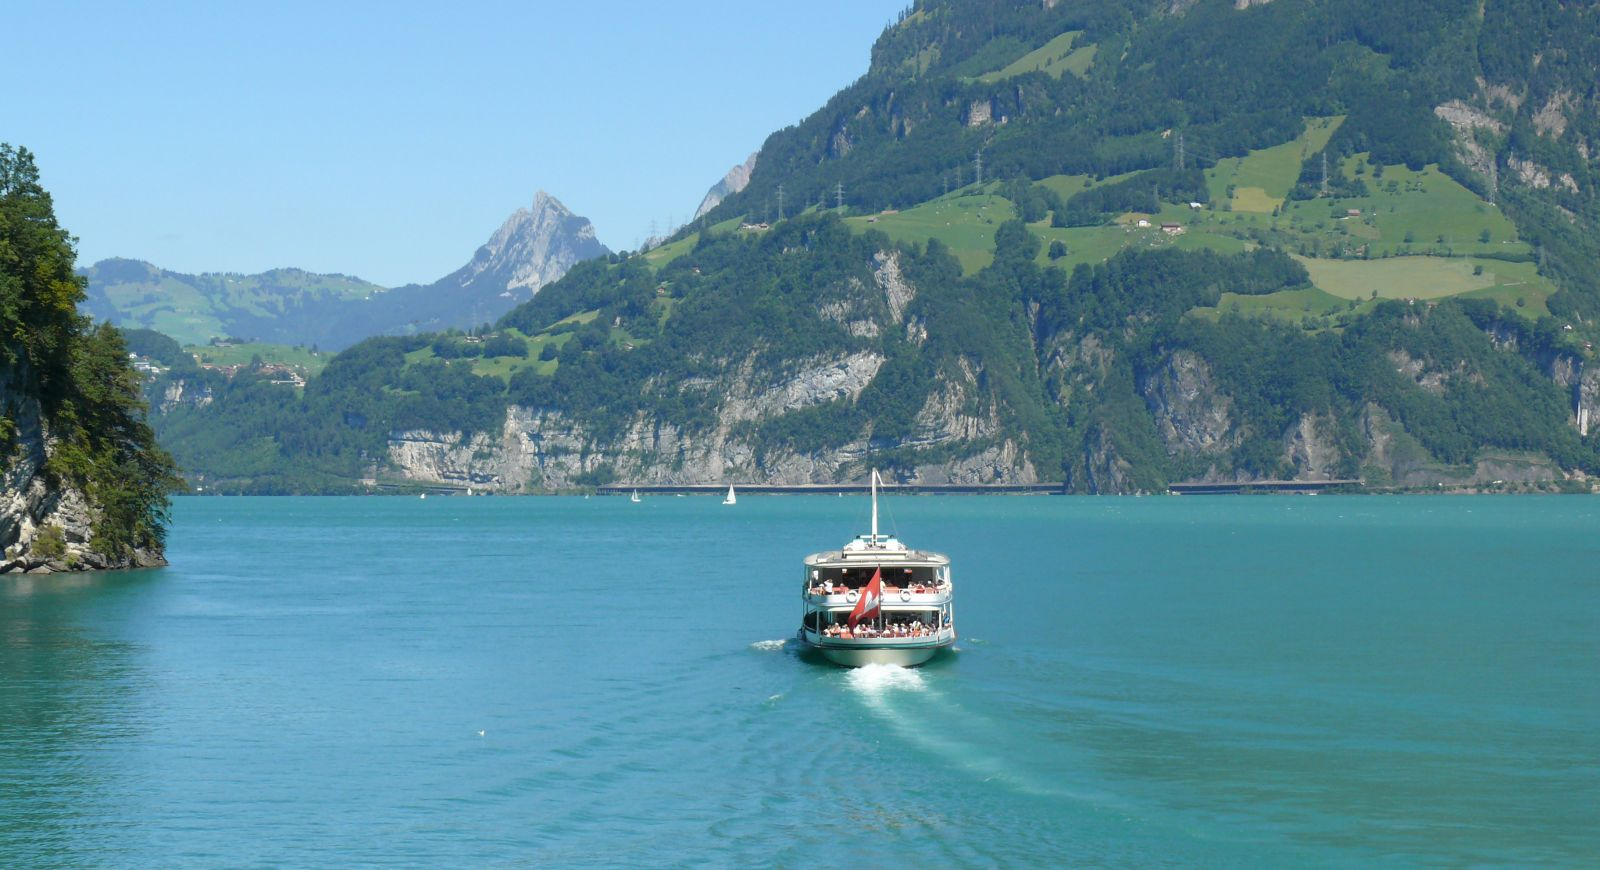 Cruise On Lake Lucerne